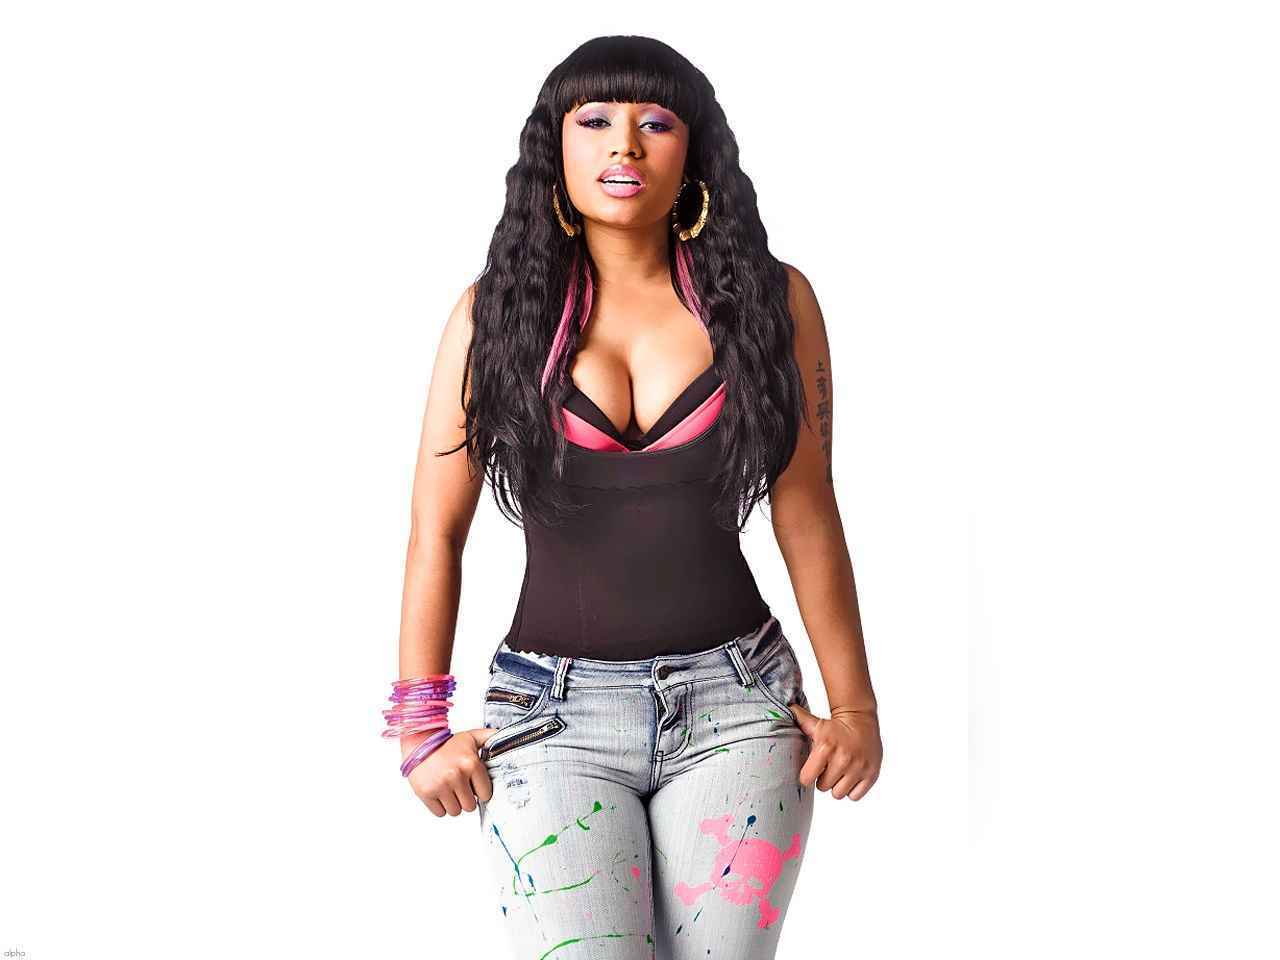 Nicki Minaj Wallpapers Hd Wallpapers Download 1280x960